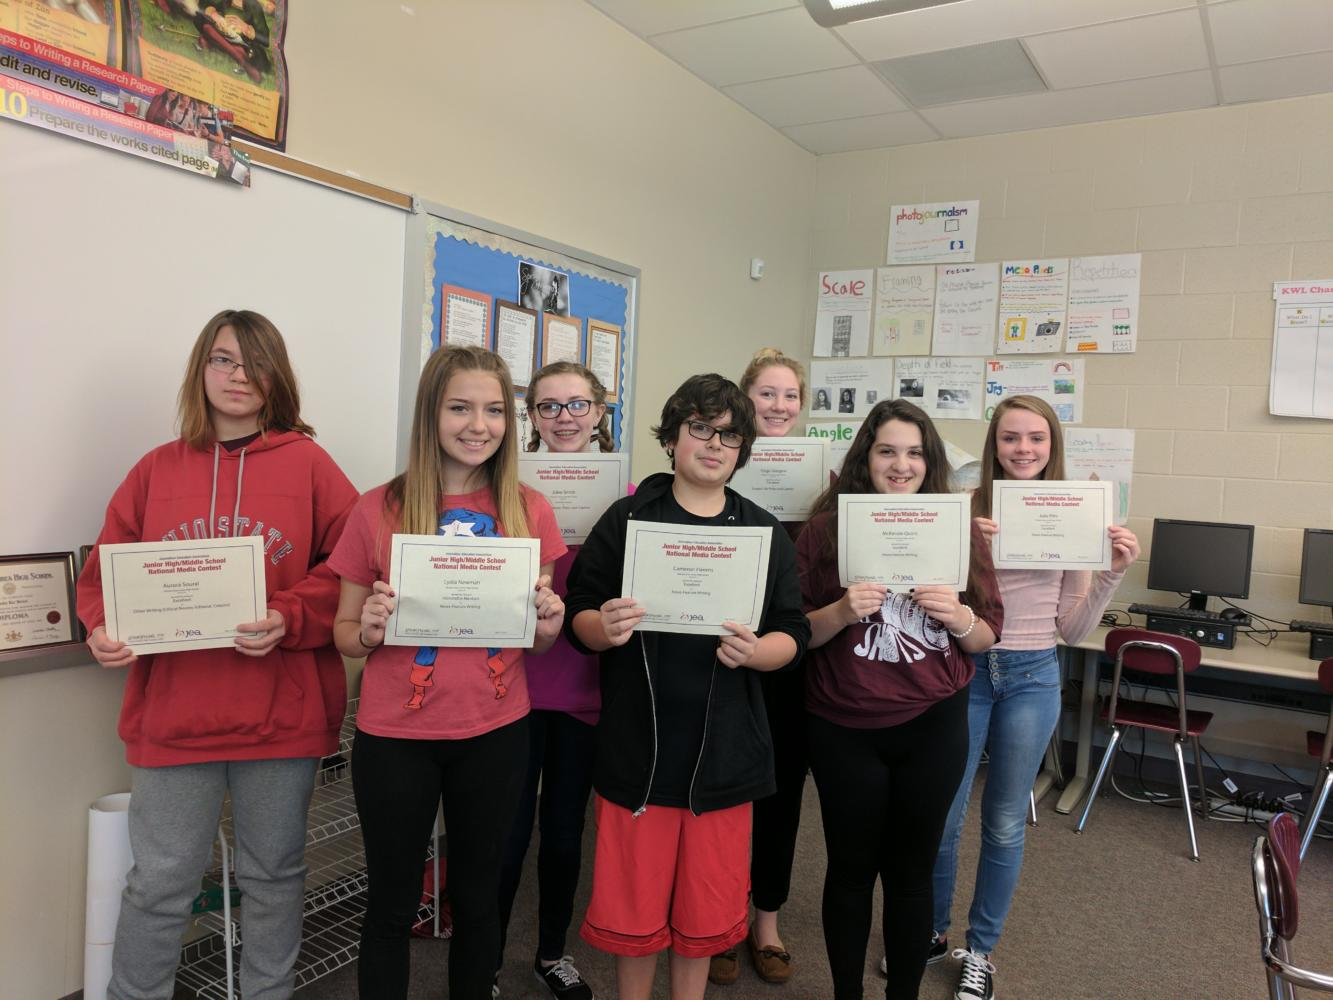 Aurora Soural, Lydia Newman, Jolee Smith, Cameron Havens, Paige Glasgow, Mckenzie Quirin and Julia Pitts display certificates recognizing their ratings for the National Media Contest. (pictured from left to right)